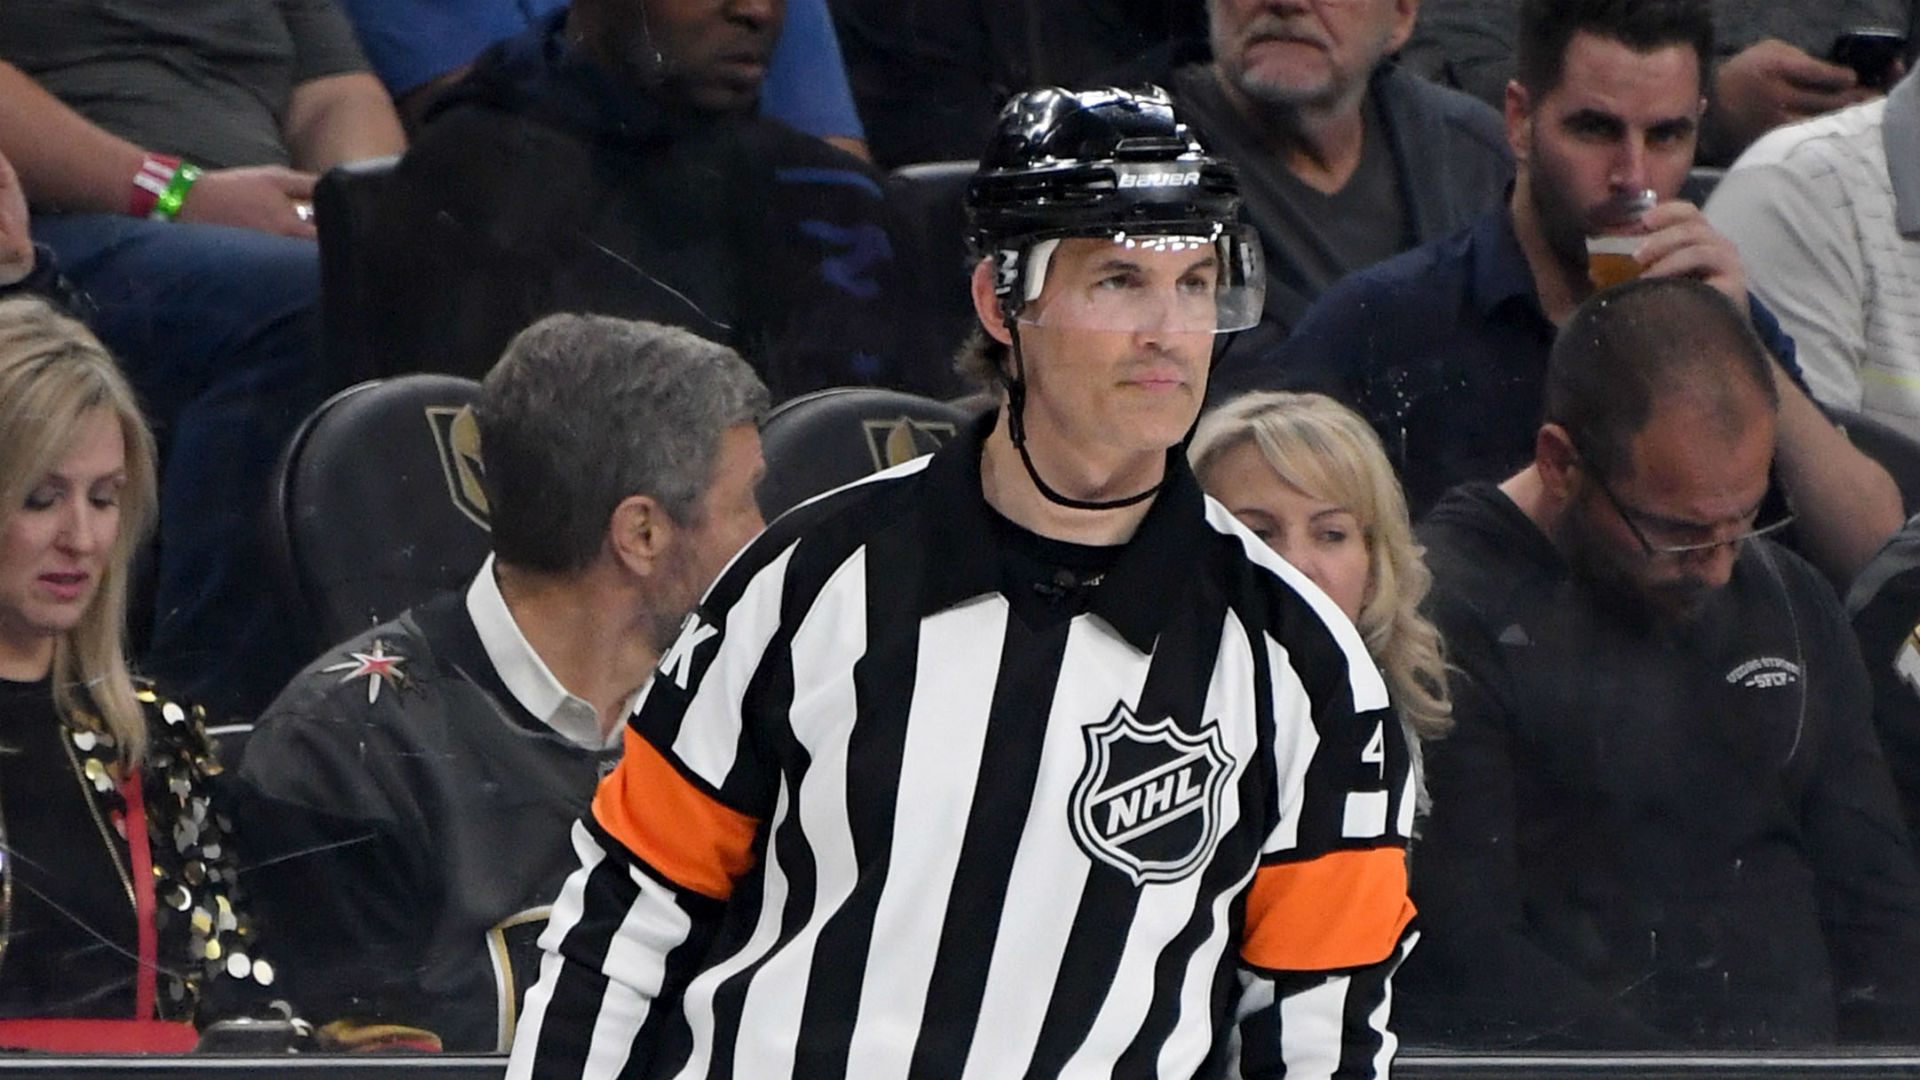 NHL playoffs 2019: Referee Wes McCauley leaves Game 6 with hamstring injury